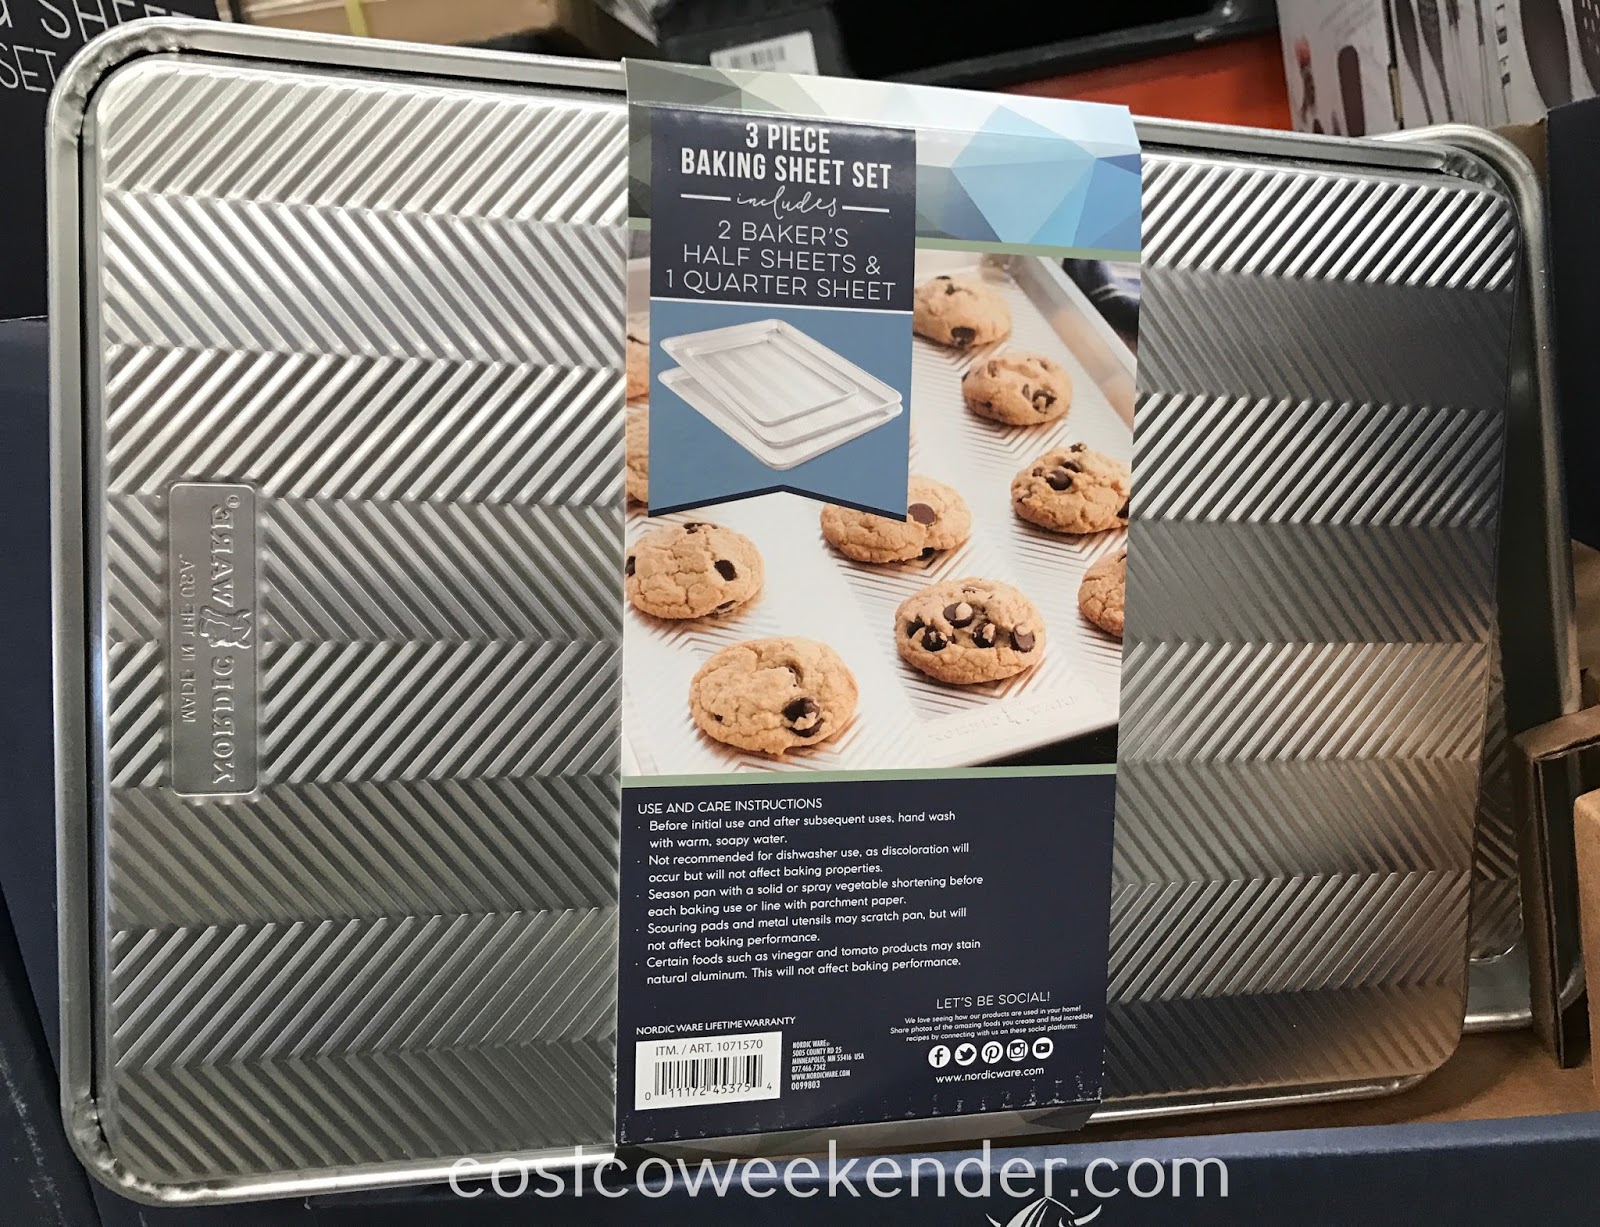 Costco 1071570 - Nordic Ware Natural Prism Baking Sheet Set (3 piece): great for any home baker